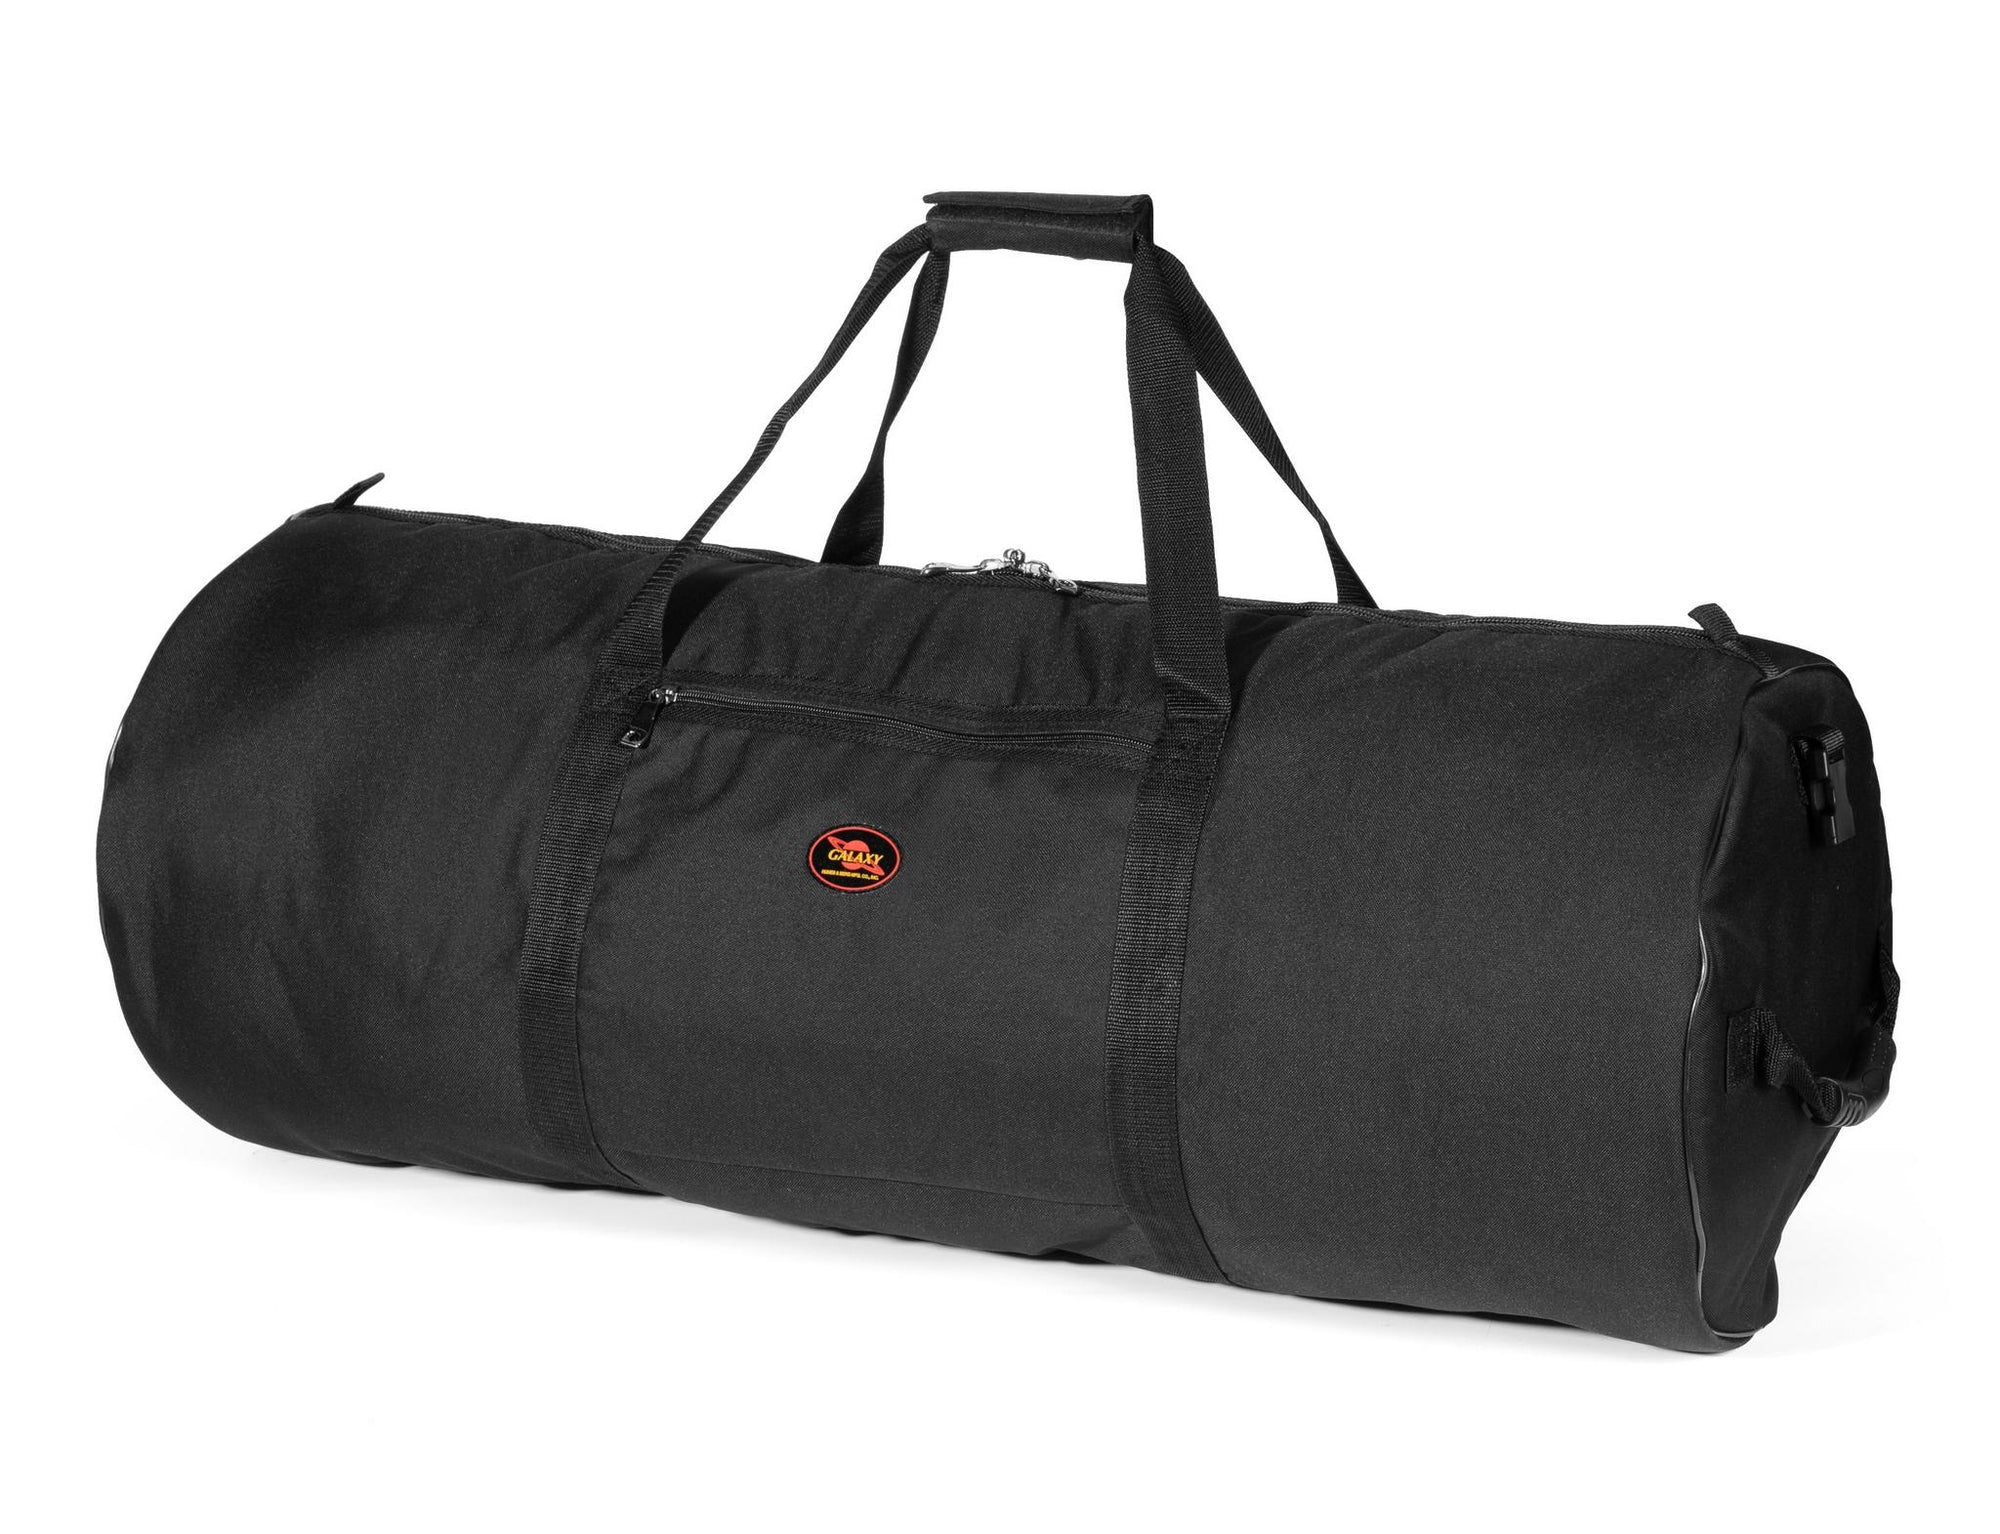 H&B  Galaxy 30.5 x 14.5 Inches Companion Bag